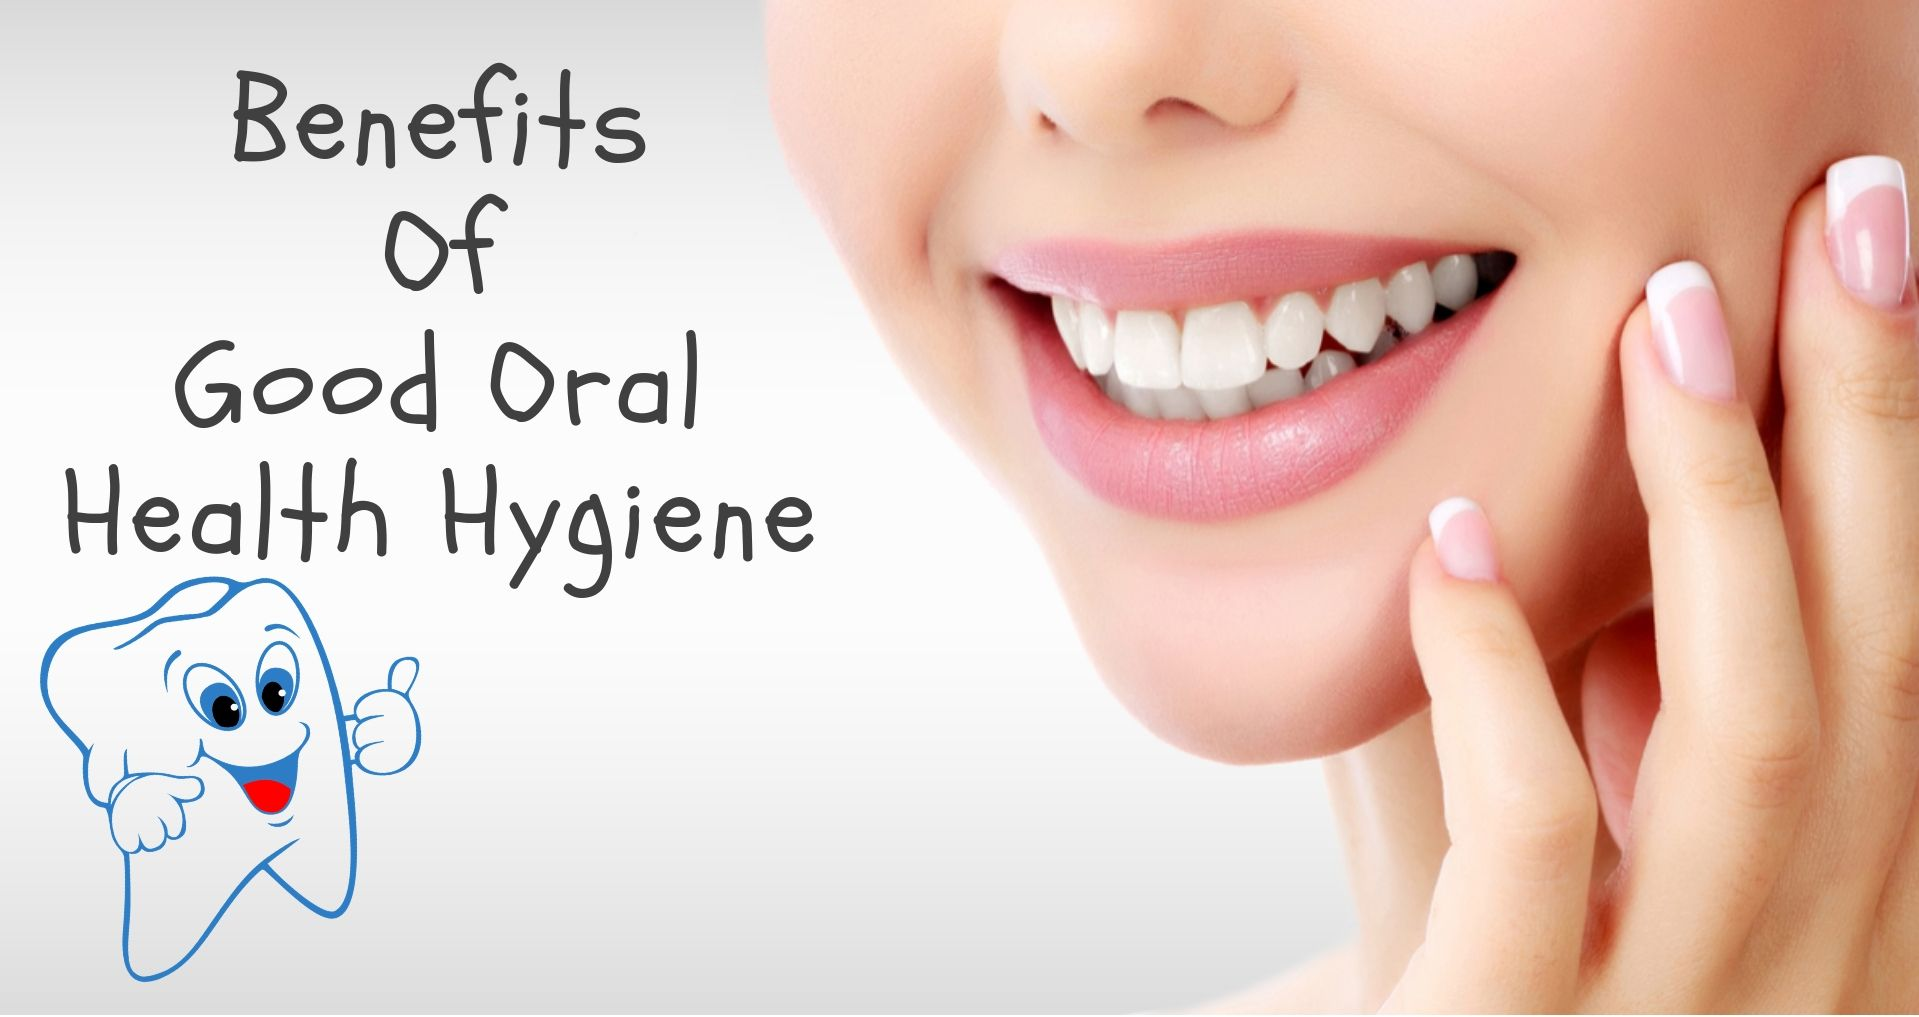 Brushing, flossing and rinsing with a fluoride content